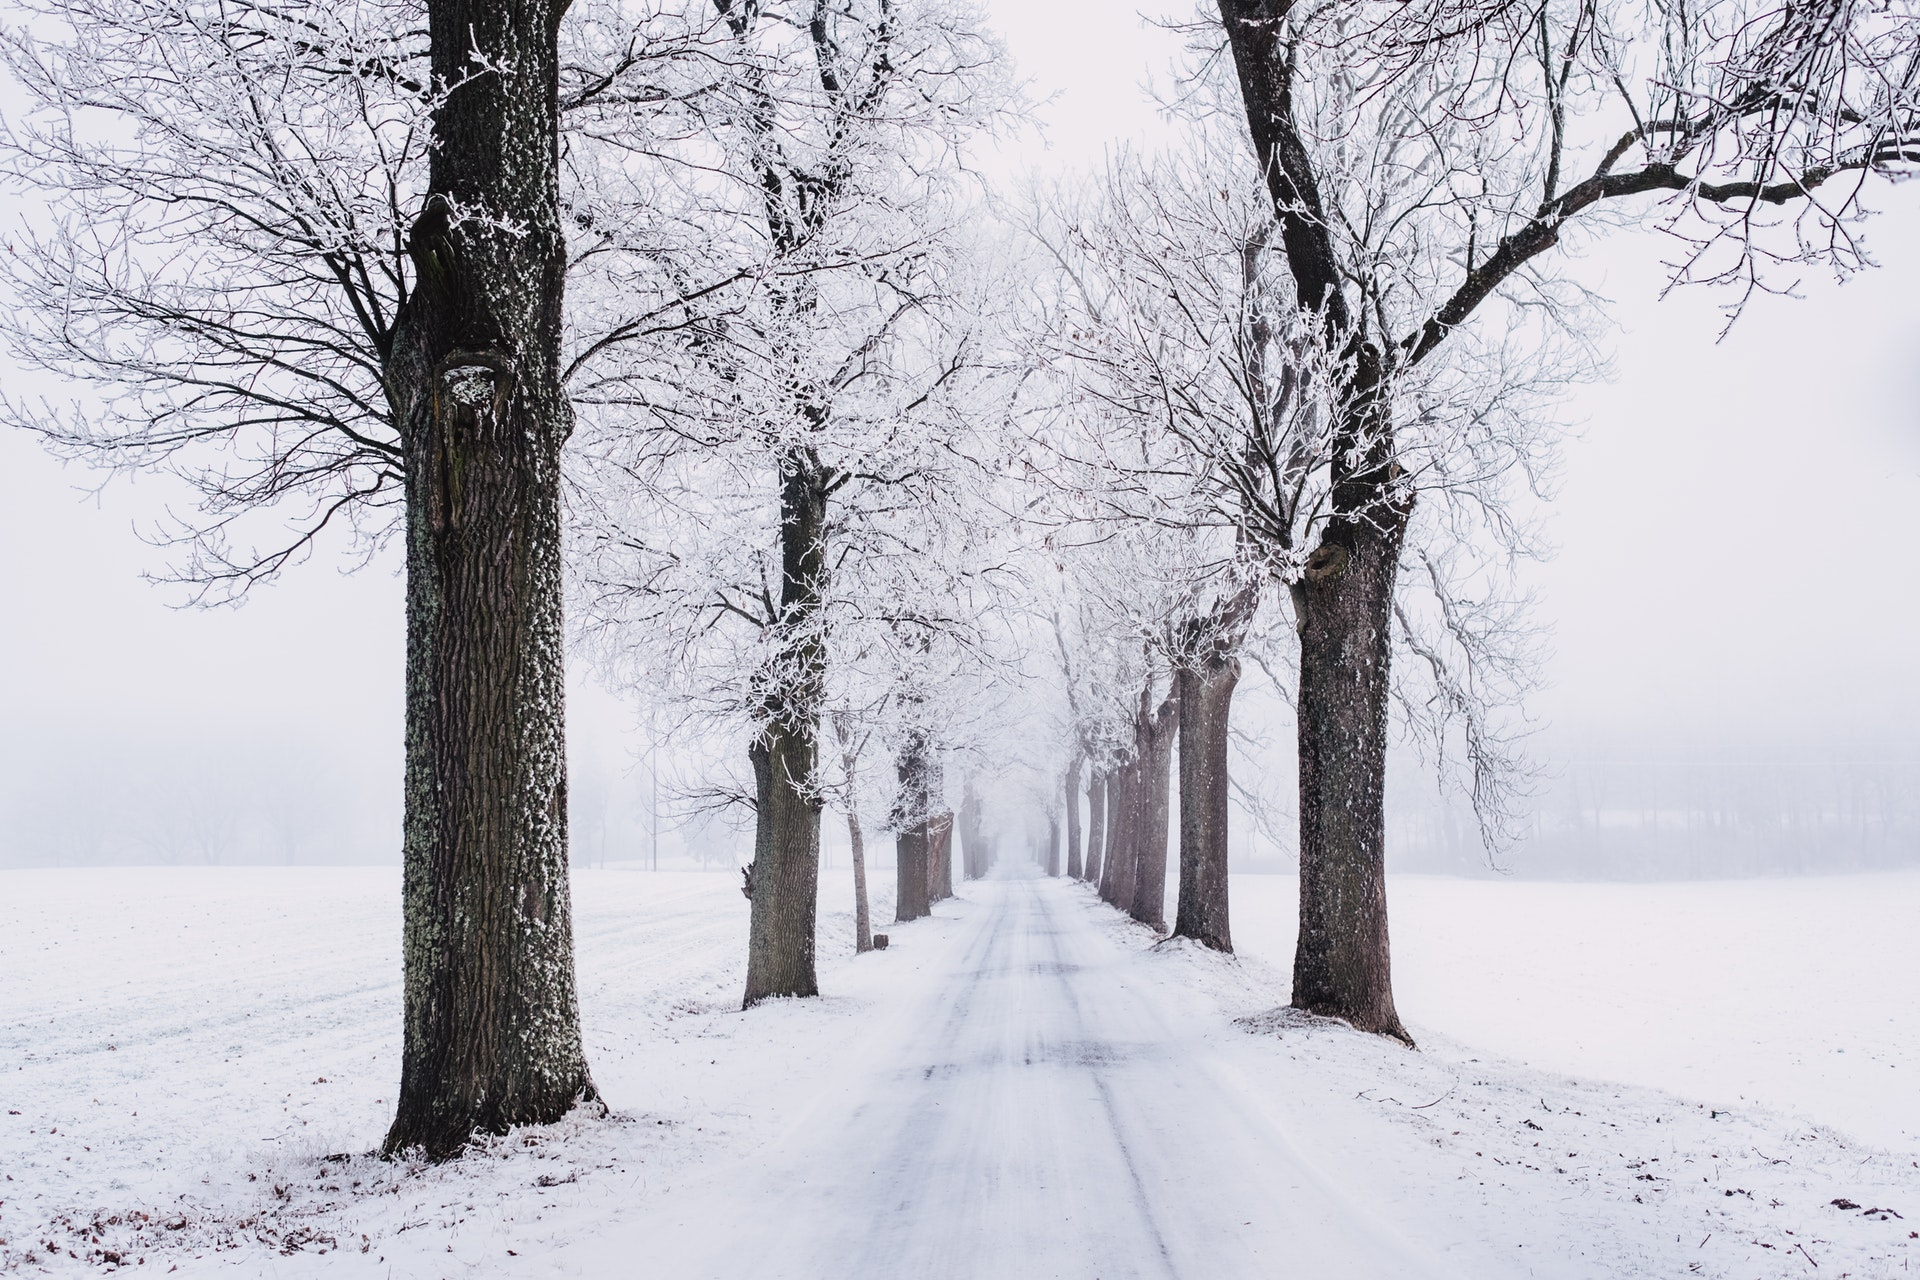 snowy-pathway-surrounded-by-bare-tree-839462